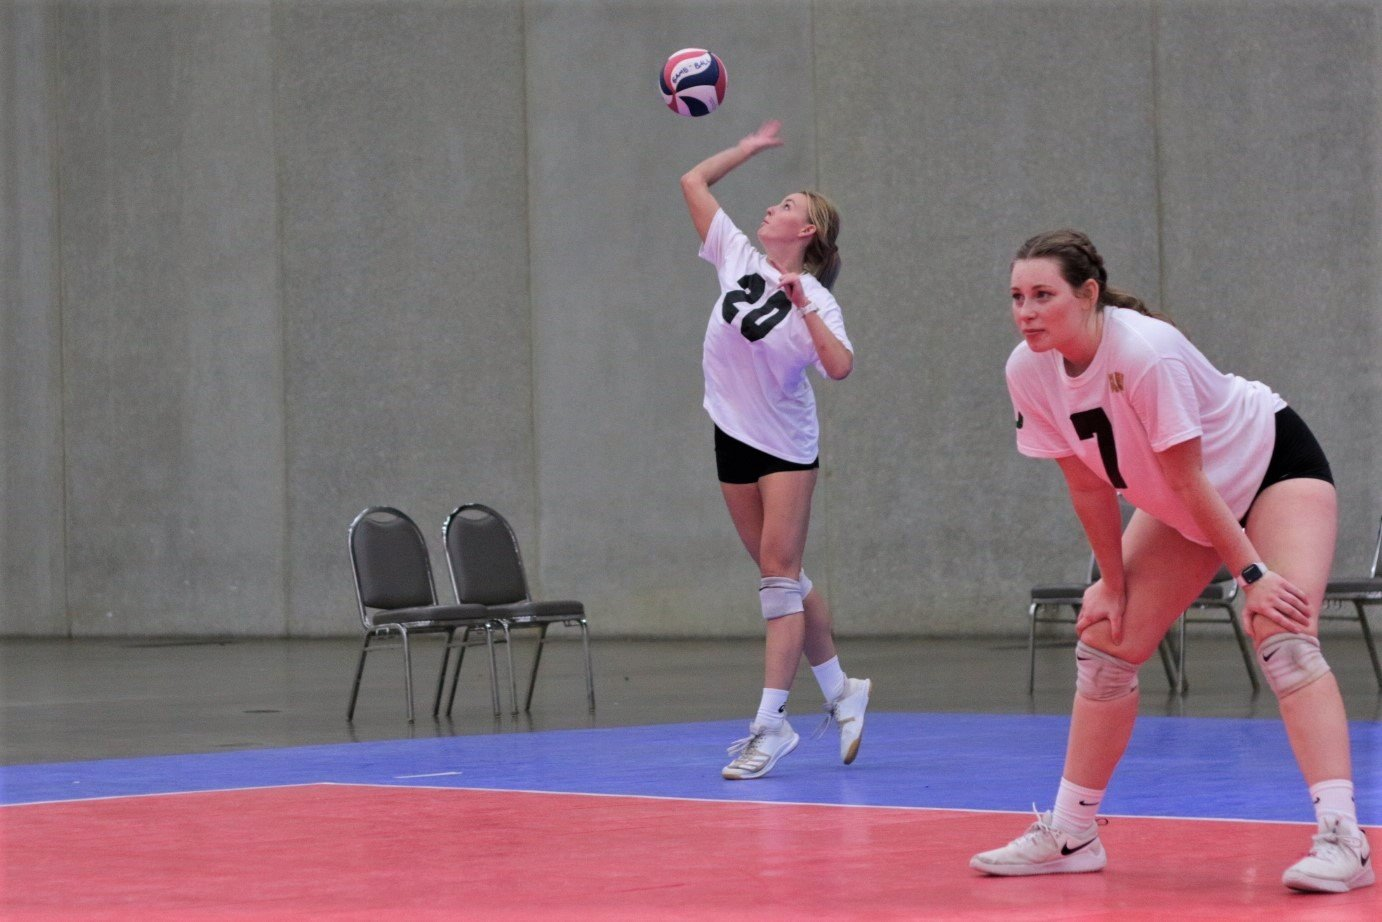 2021 USA Volleyball Open National Championship woman serving